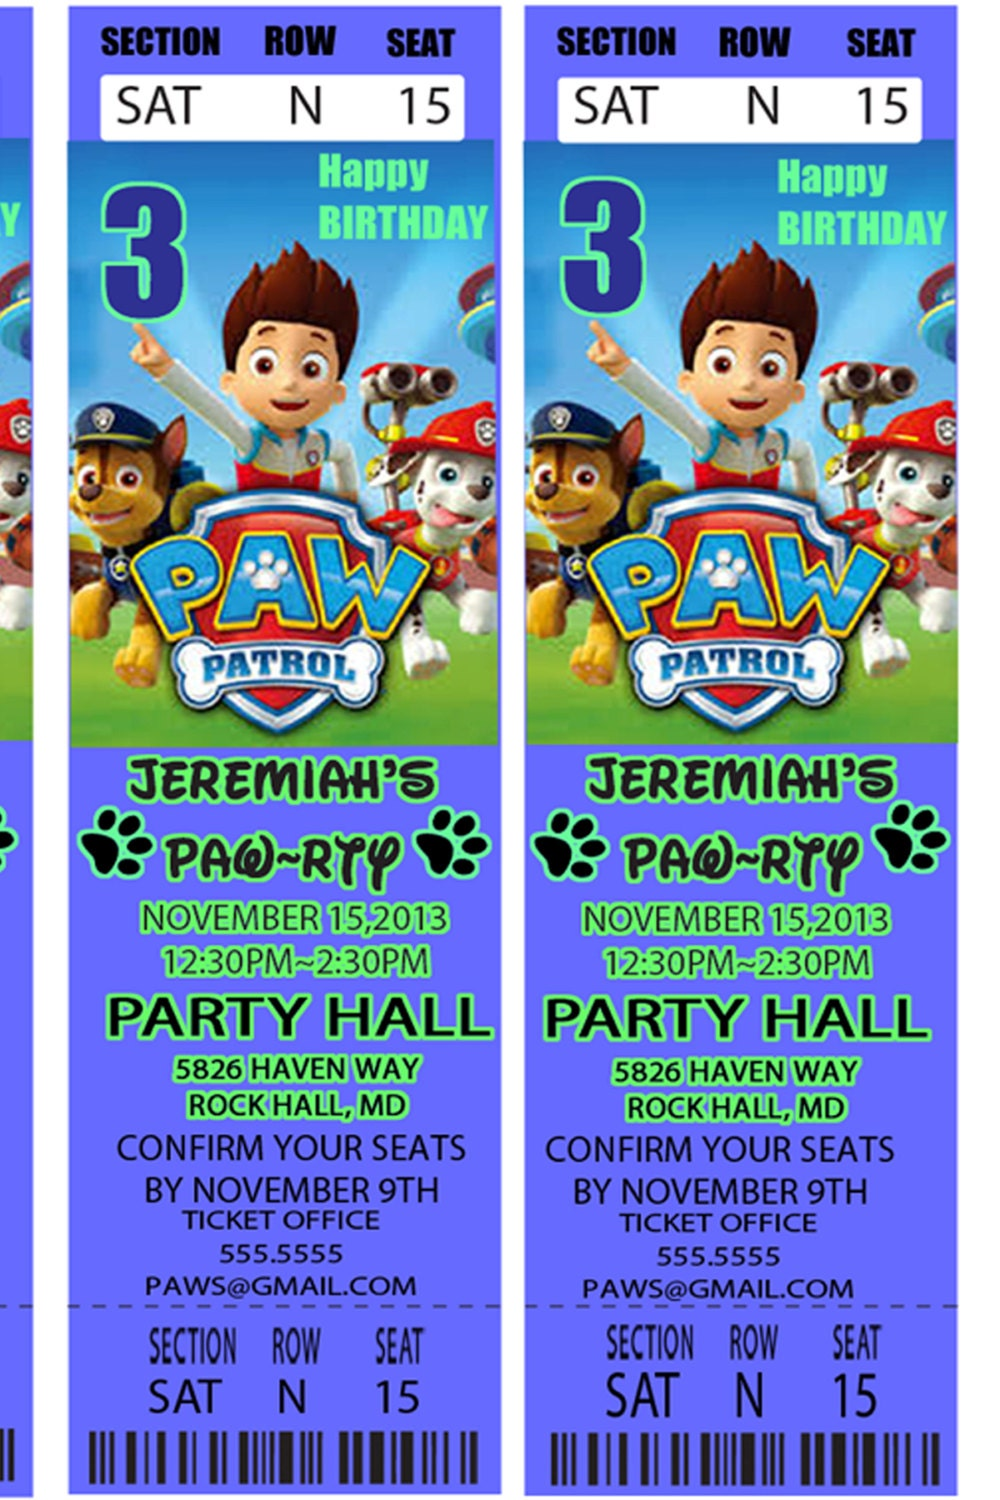 Paw patrol parties party invitations ideas for Paw patrol invitation ideas